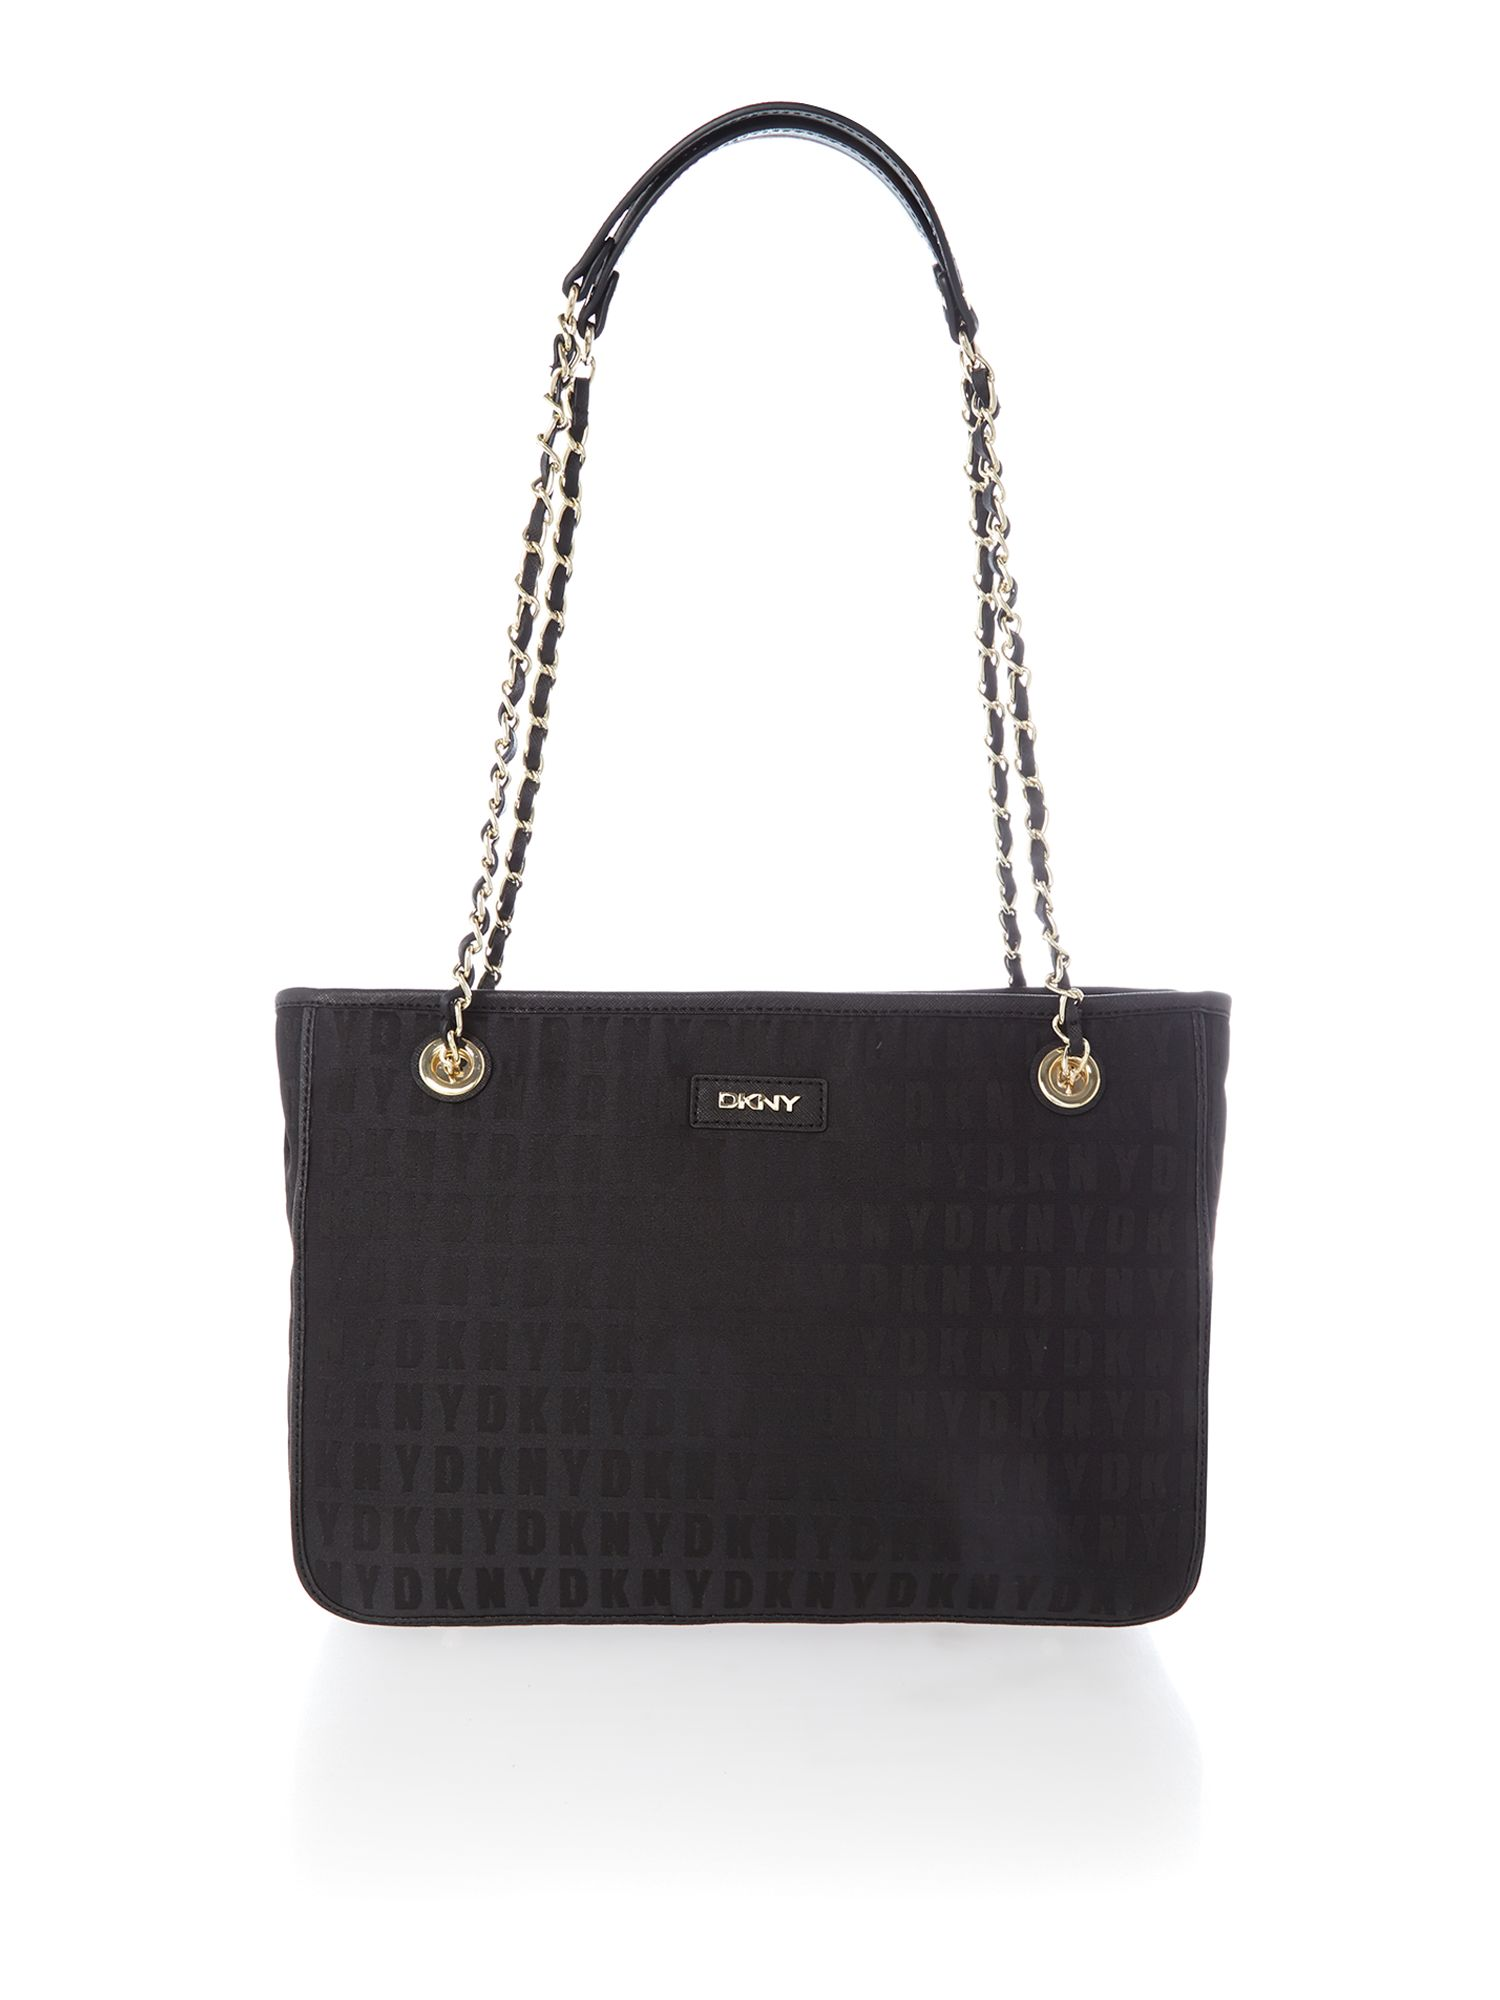 Black chain tote bag